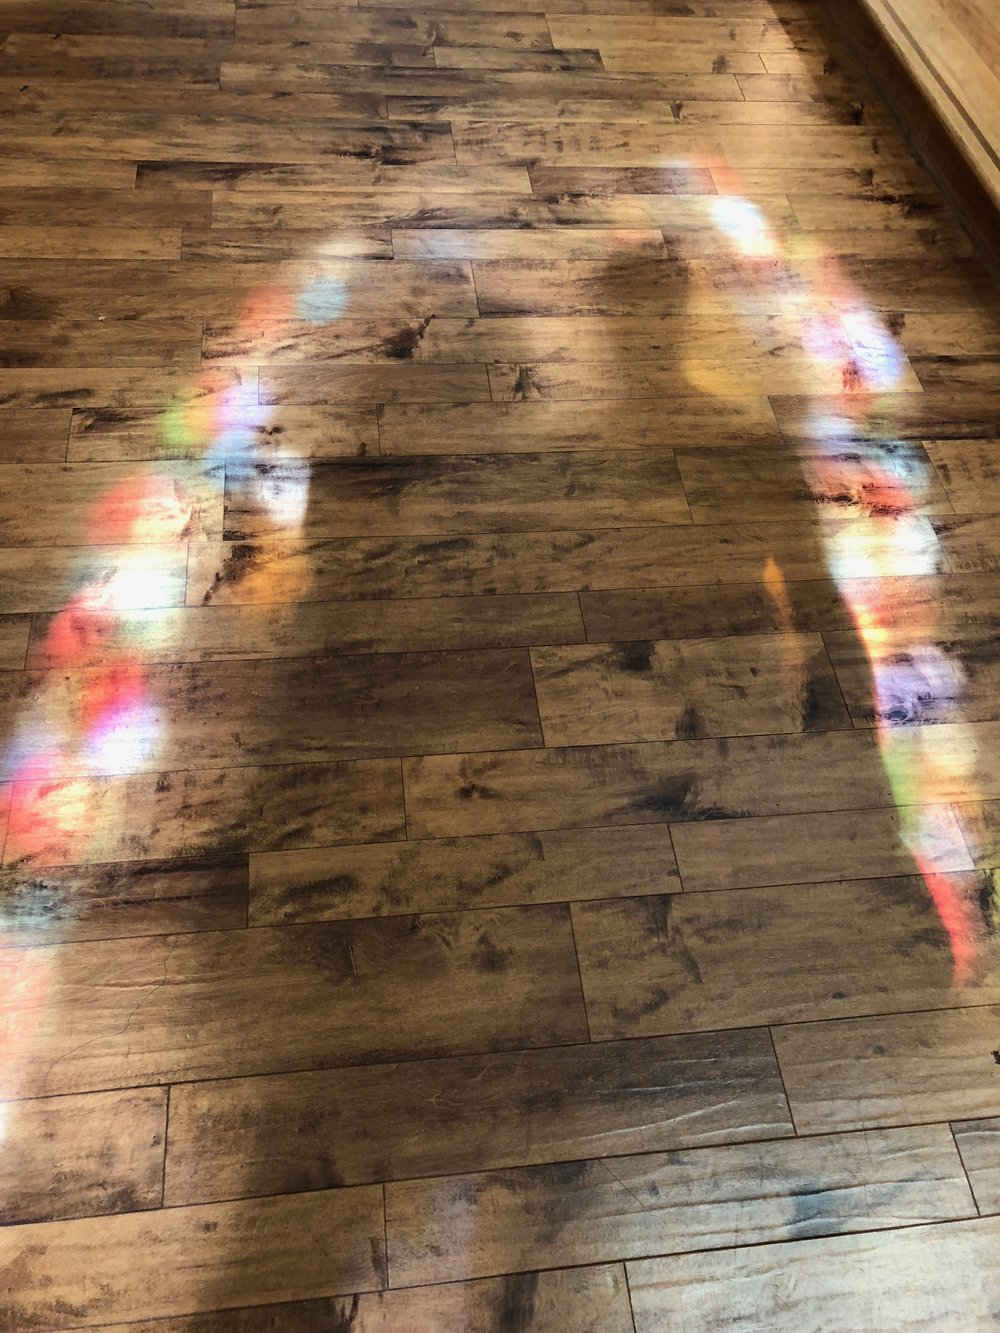 Stained Glass shadows in the Basilica